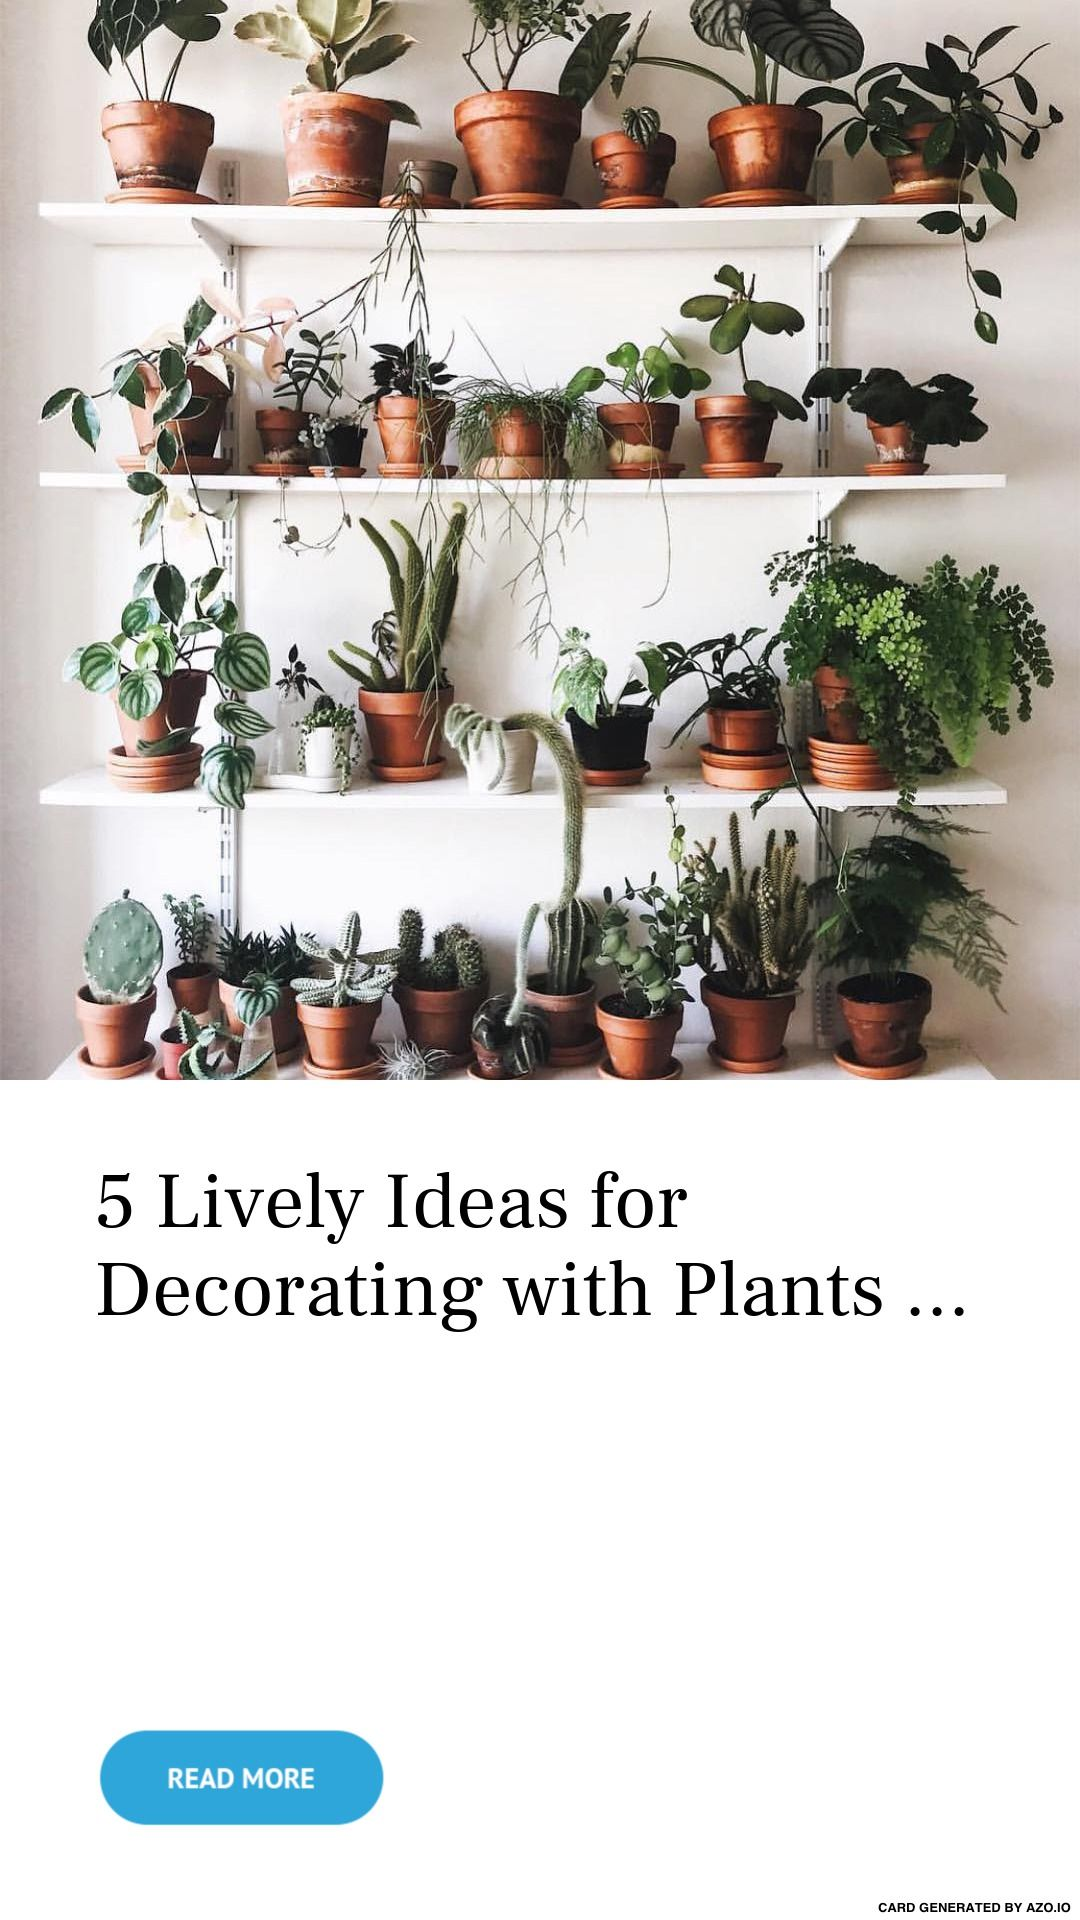 5 Lively Ideas For Decorating With Plants